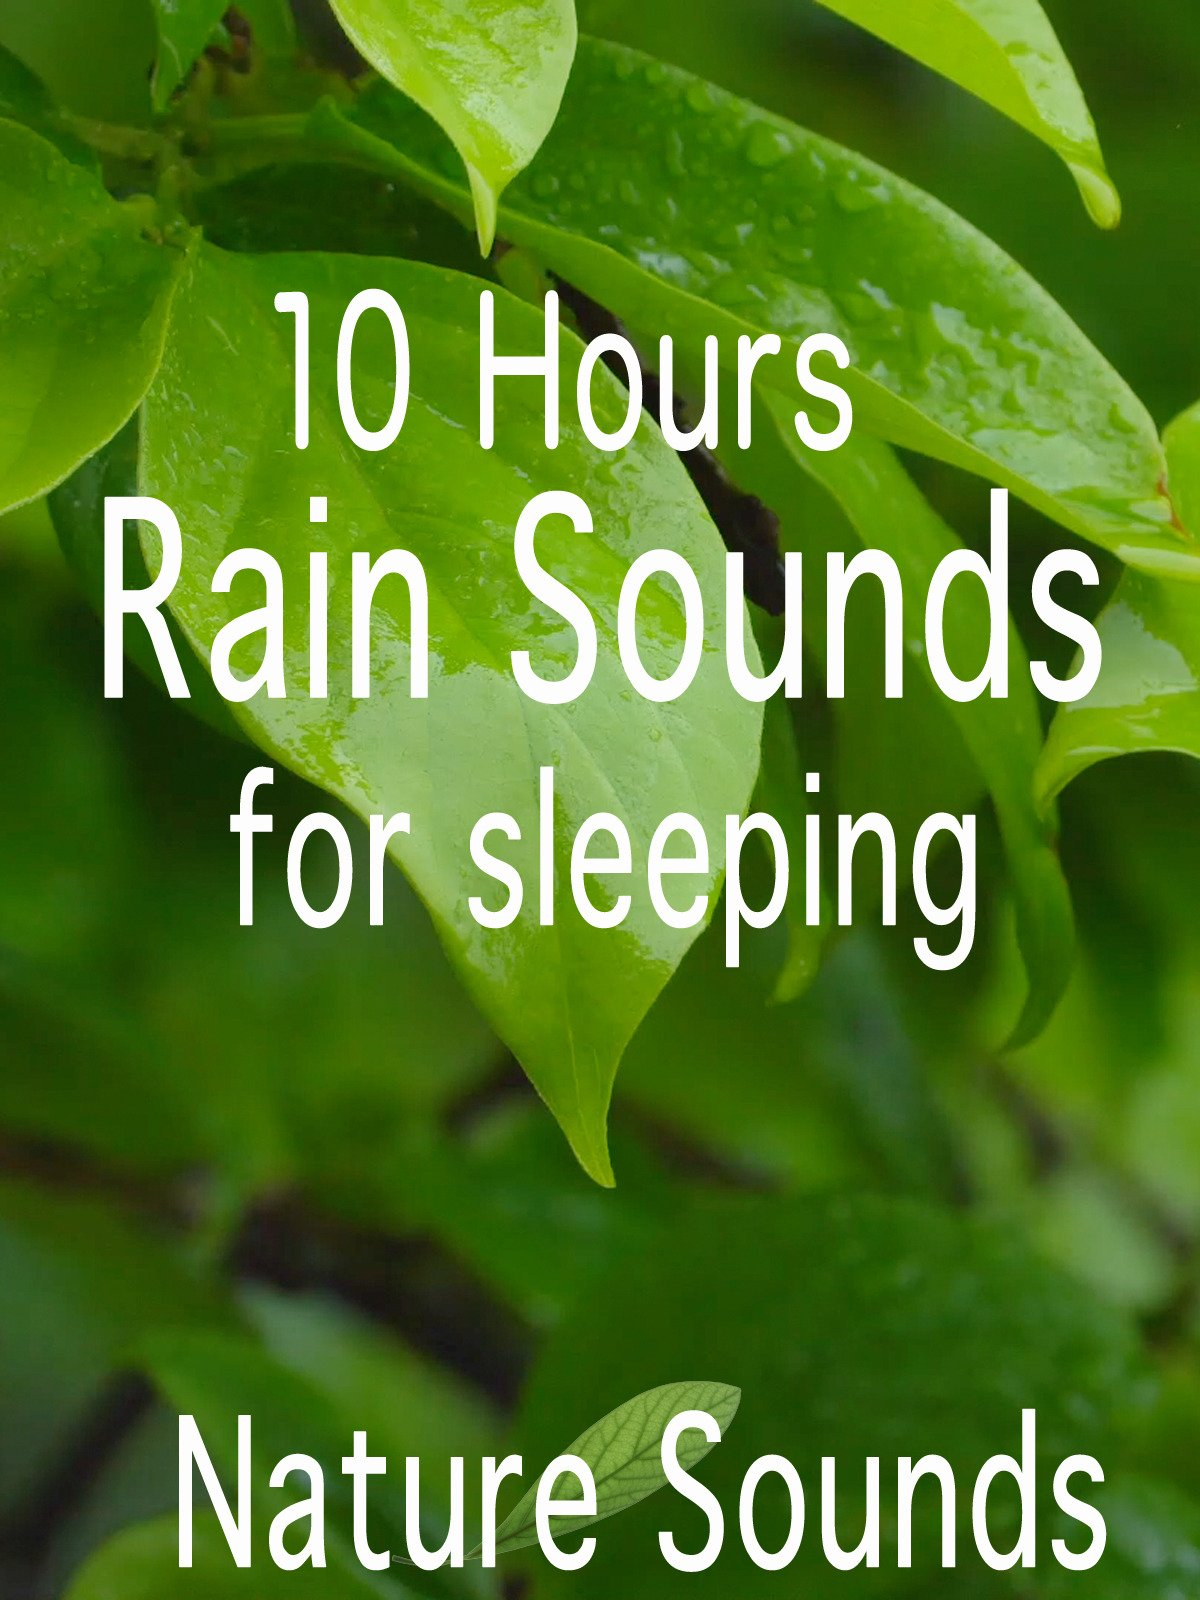 10 Hours Rain Sounds for sleeping